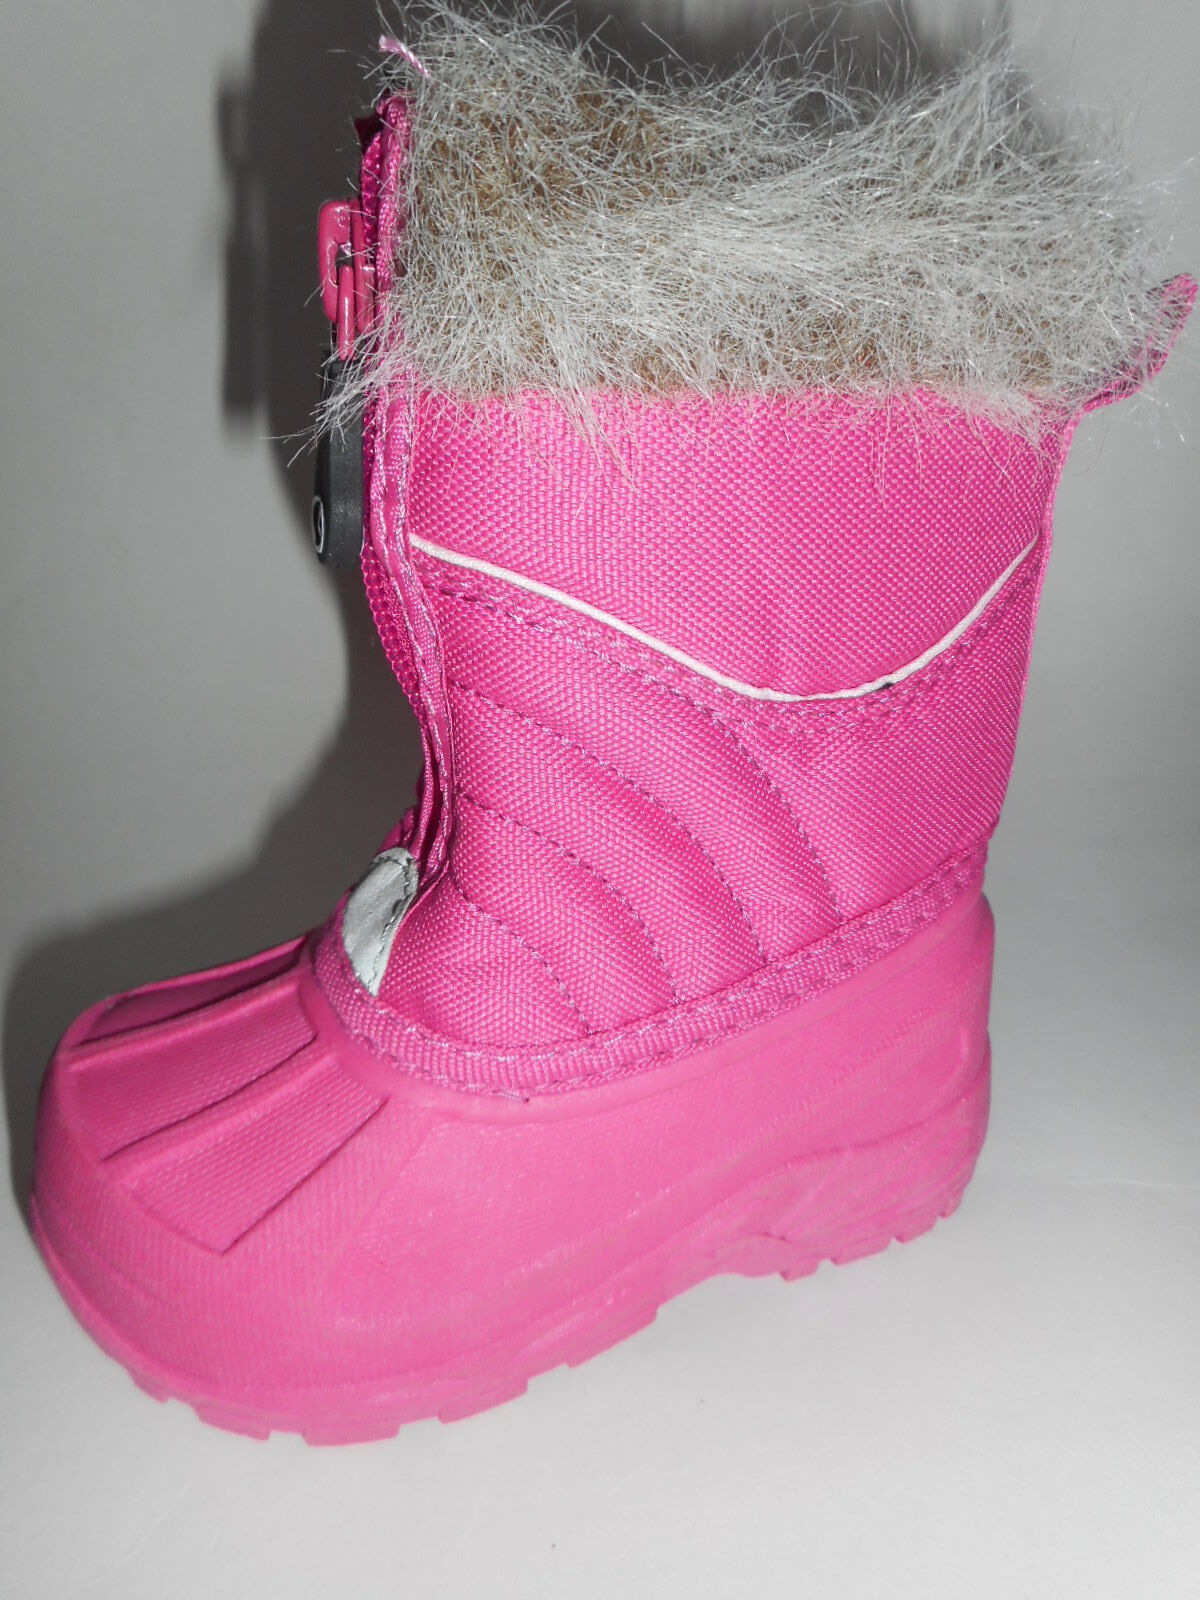 2cccc5d68 Champion Toddler Girls Winter Snow BOOTS Weather Resistant Pink Size ...